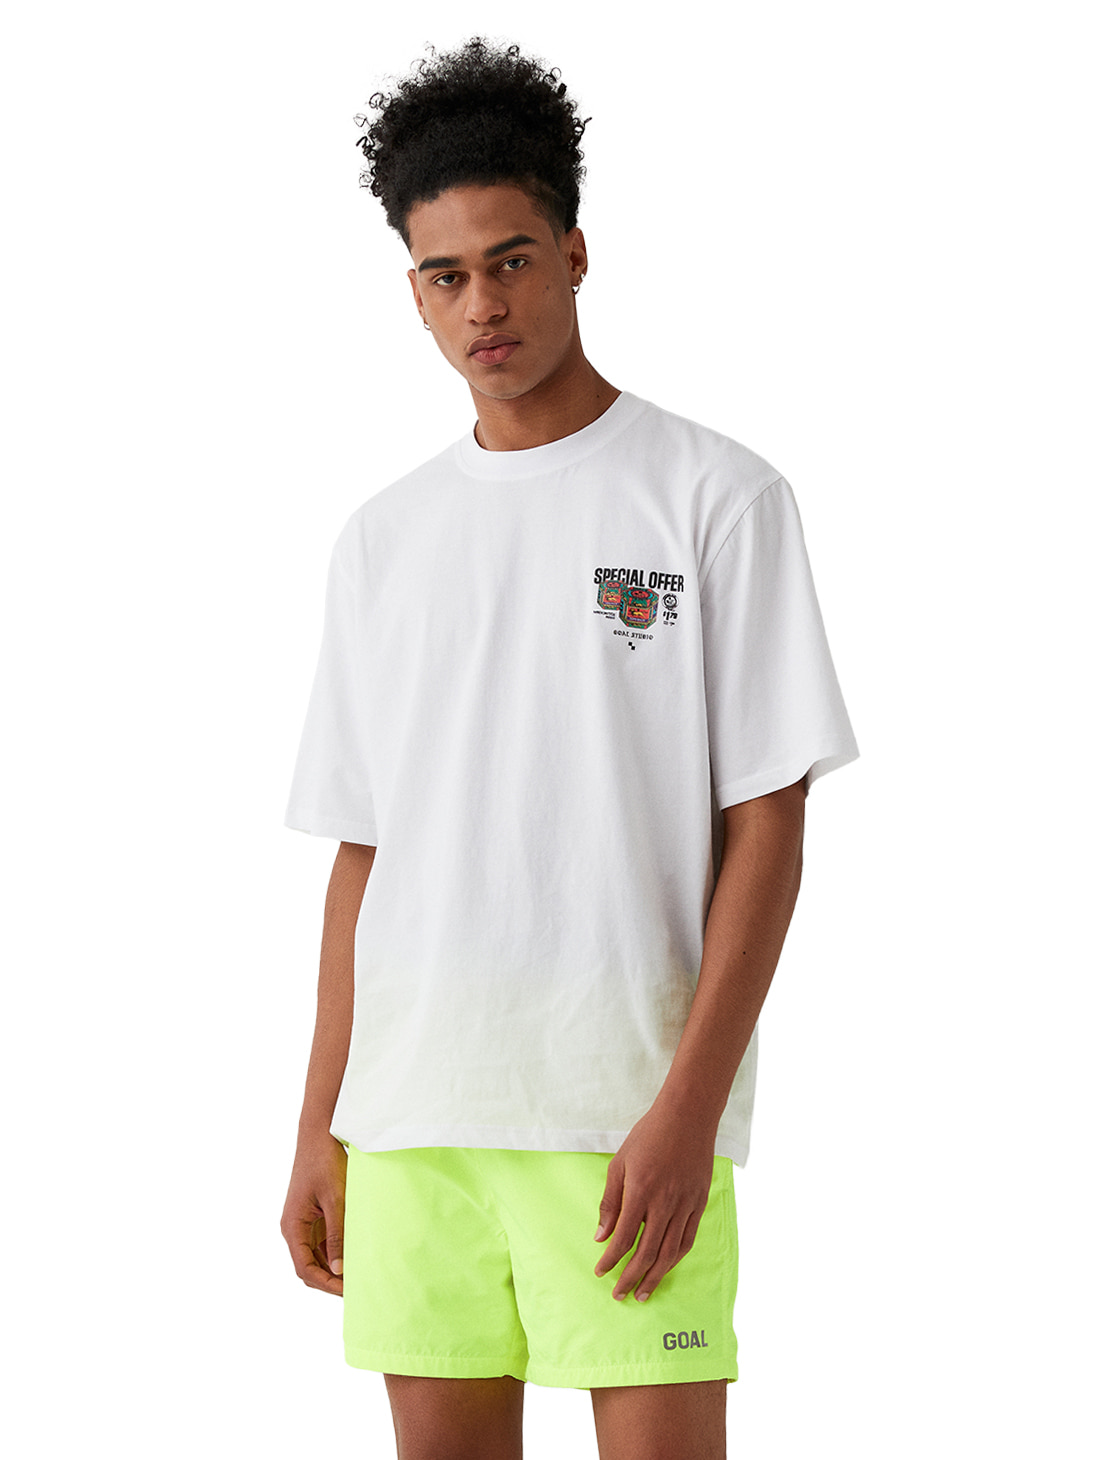 MC BALM LOGO GRAPHIC TEE - WHITE